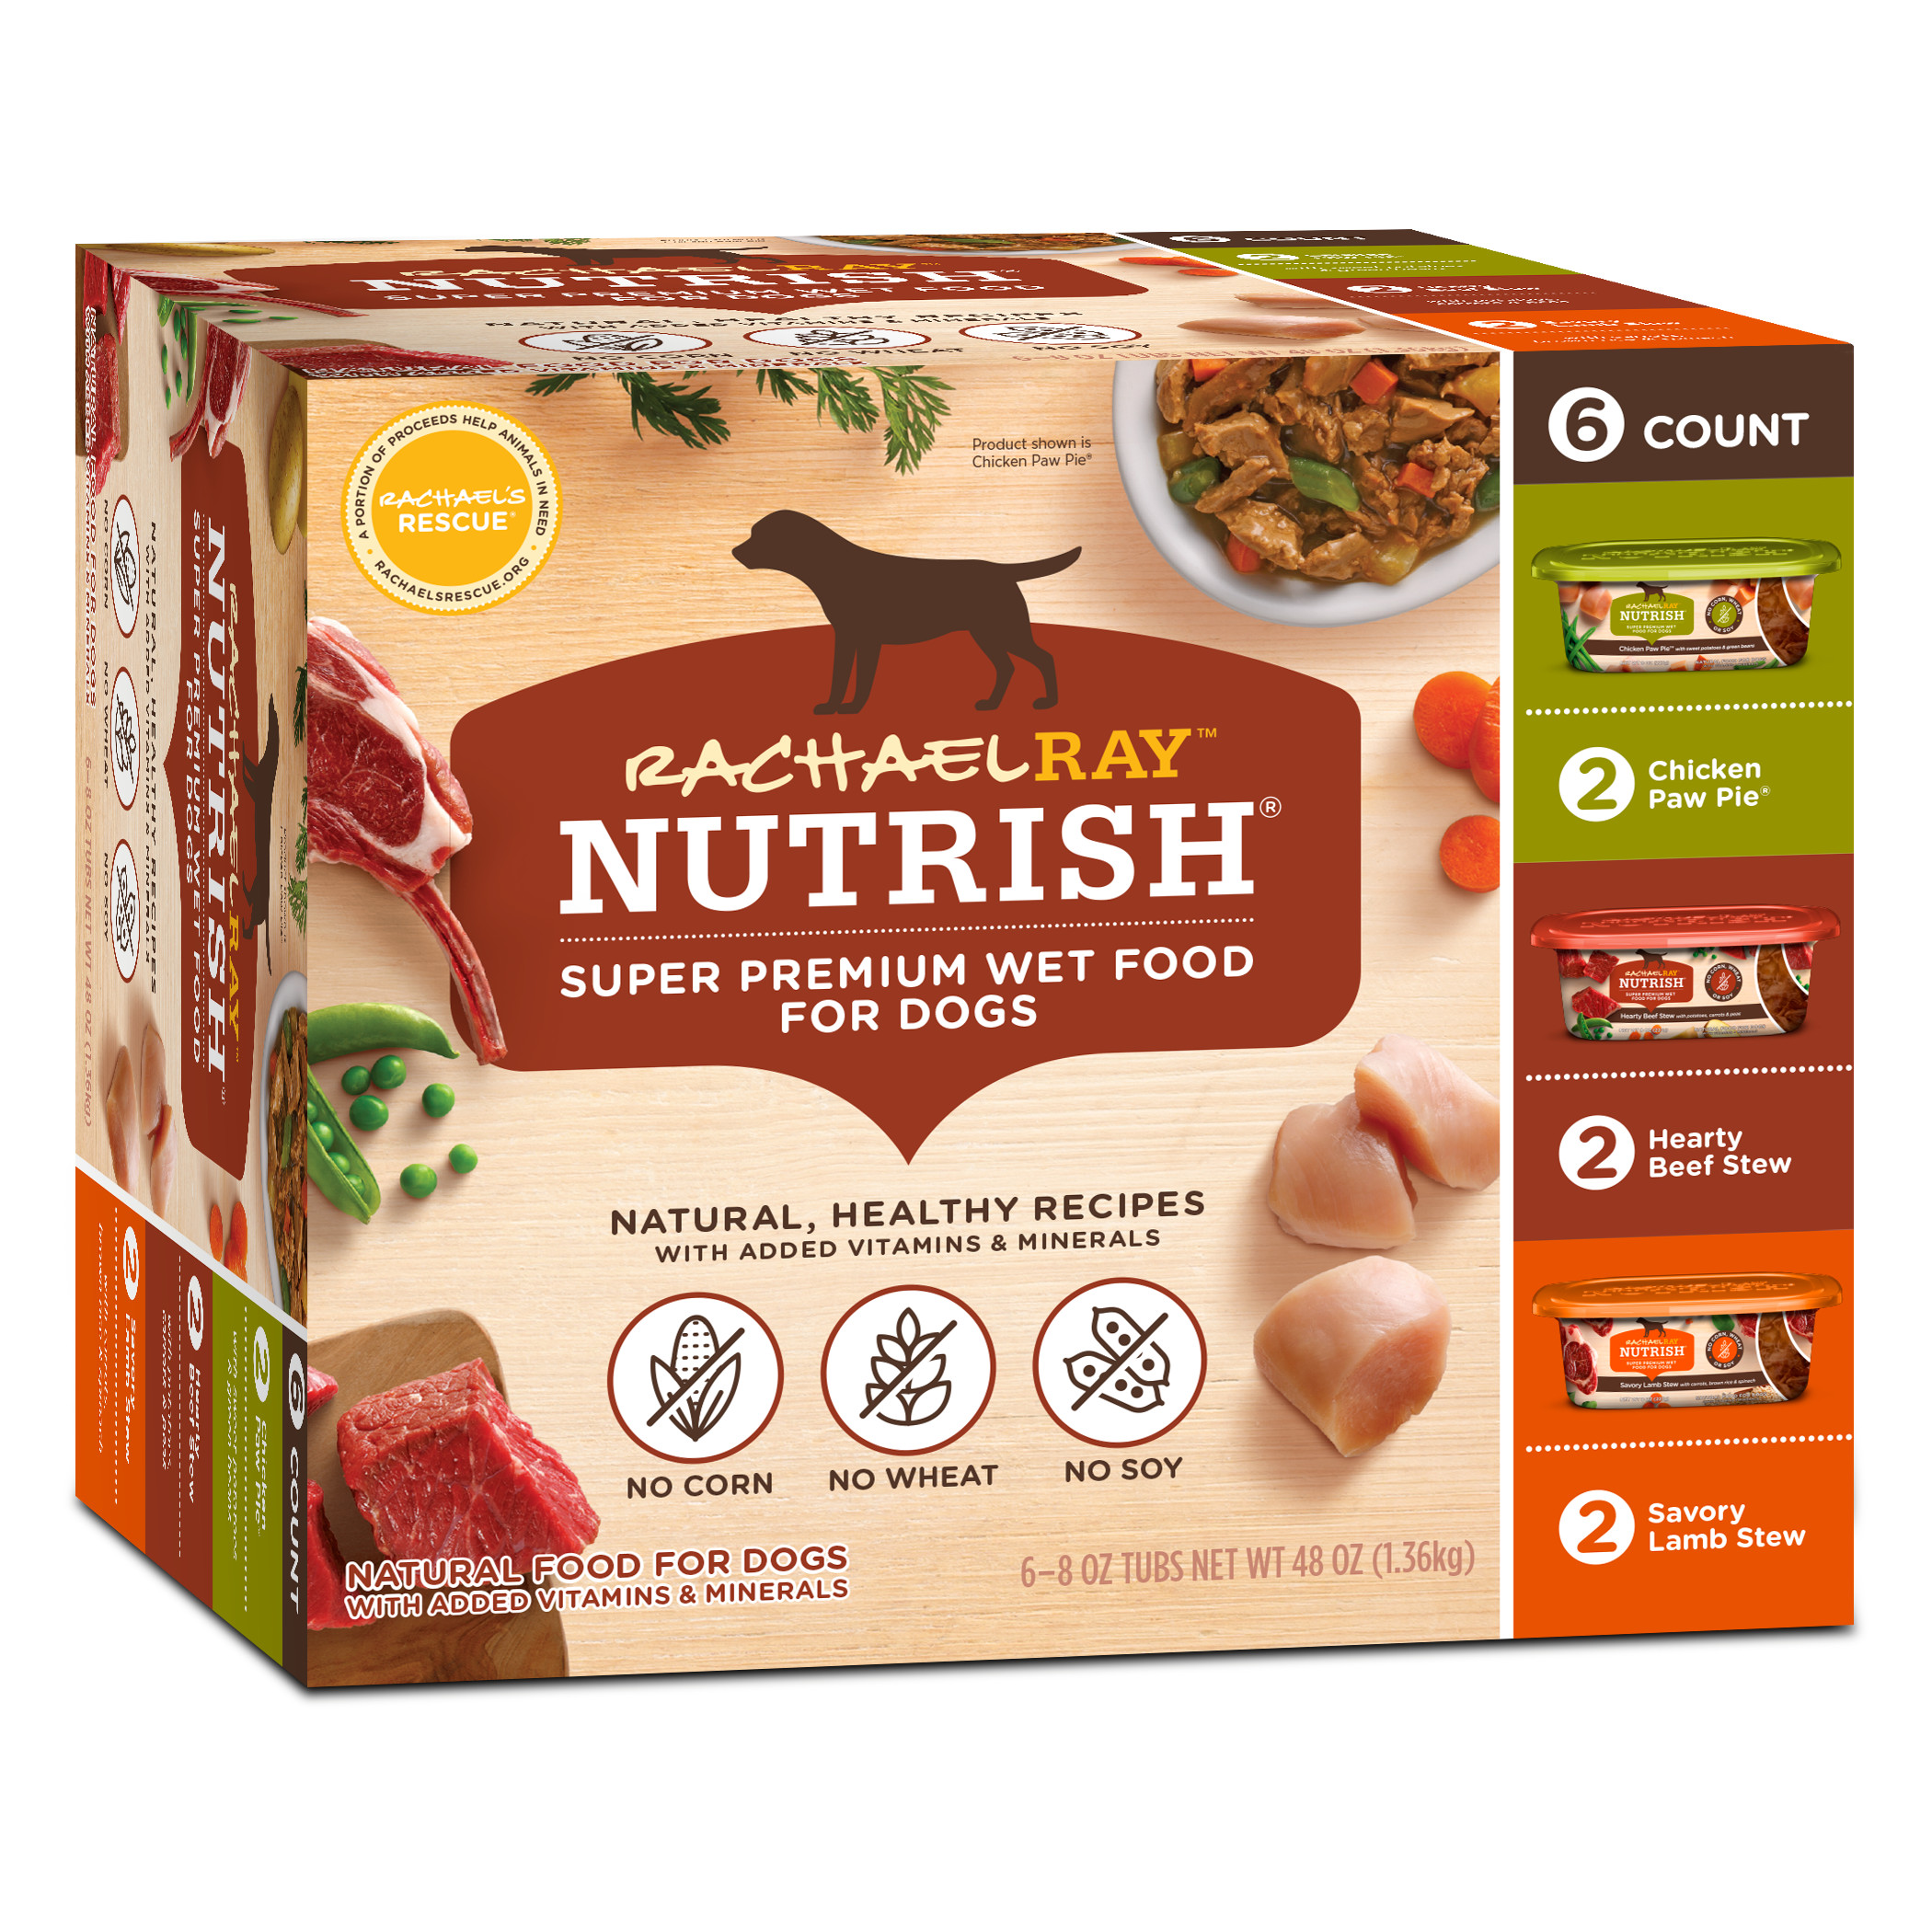 Favors All Flavors by Rachael Ray Nutrish